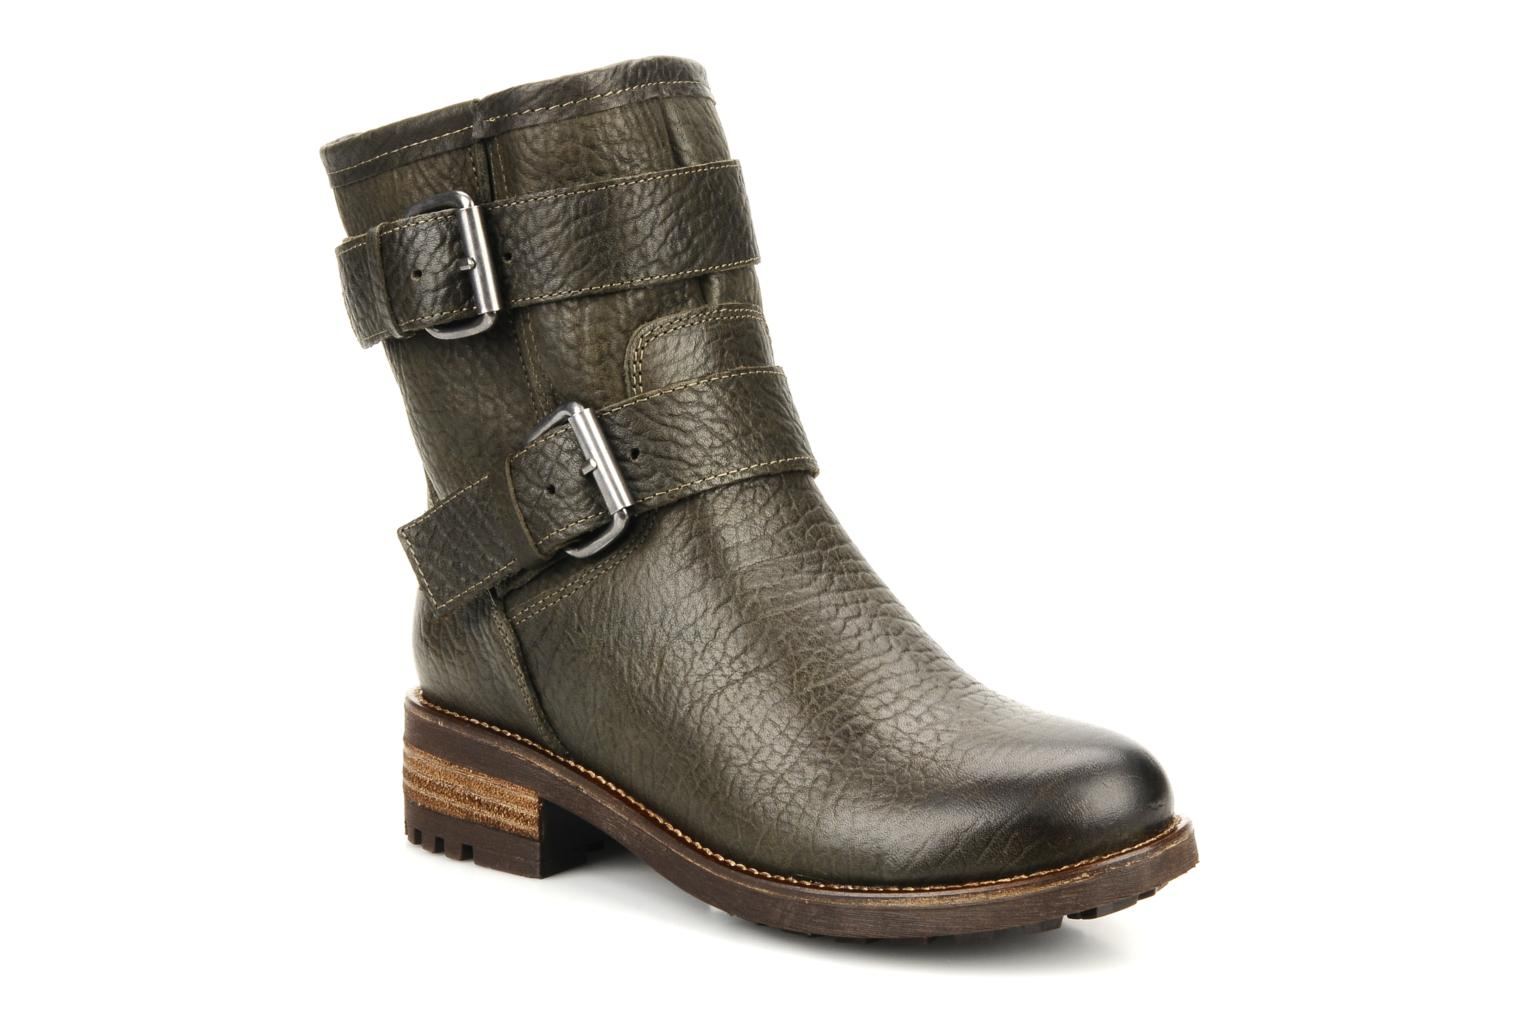 bertie neci ankle boots in green at sarenza co uk 78092